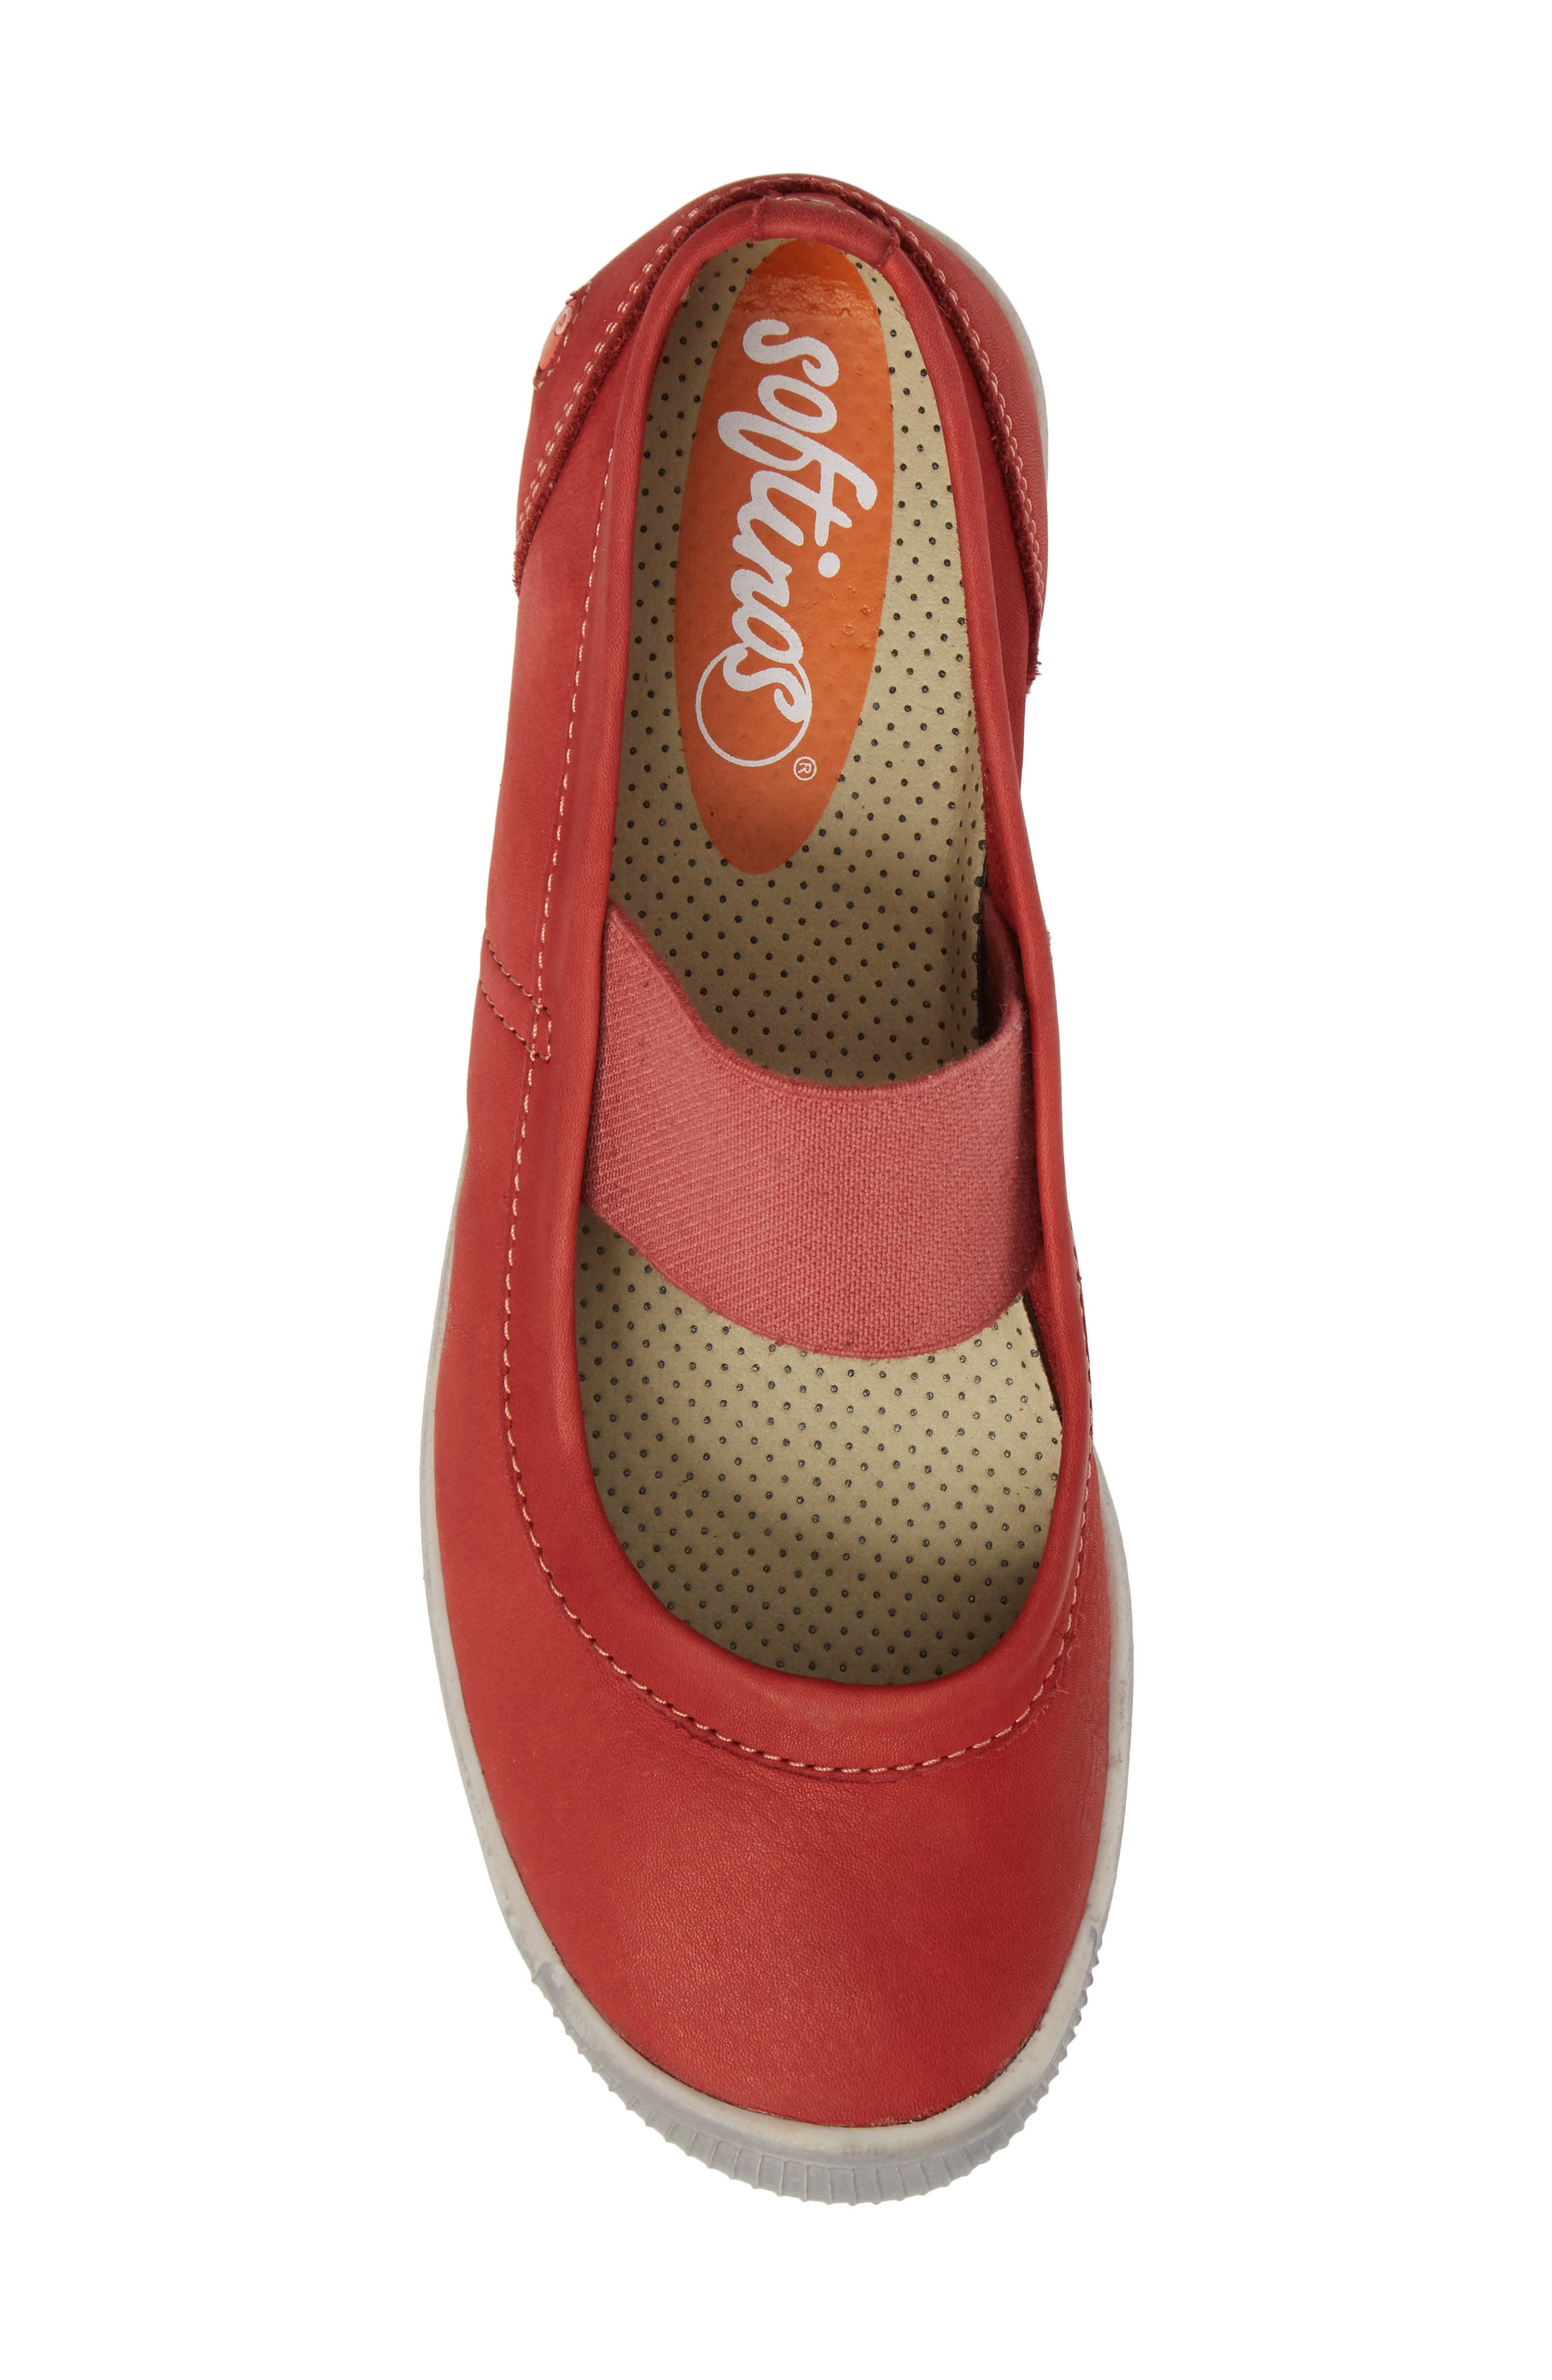 Ion Mary Jane Sneaker,                             Alternate thumbnail 5, color,                             Red Leather